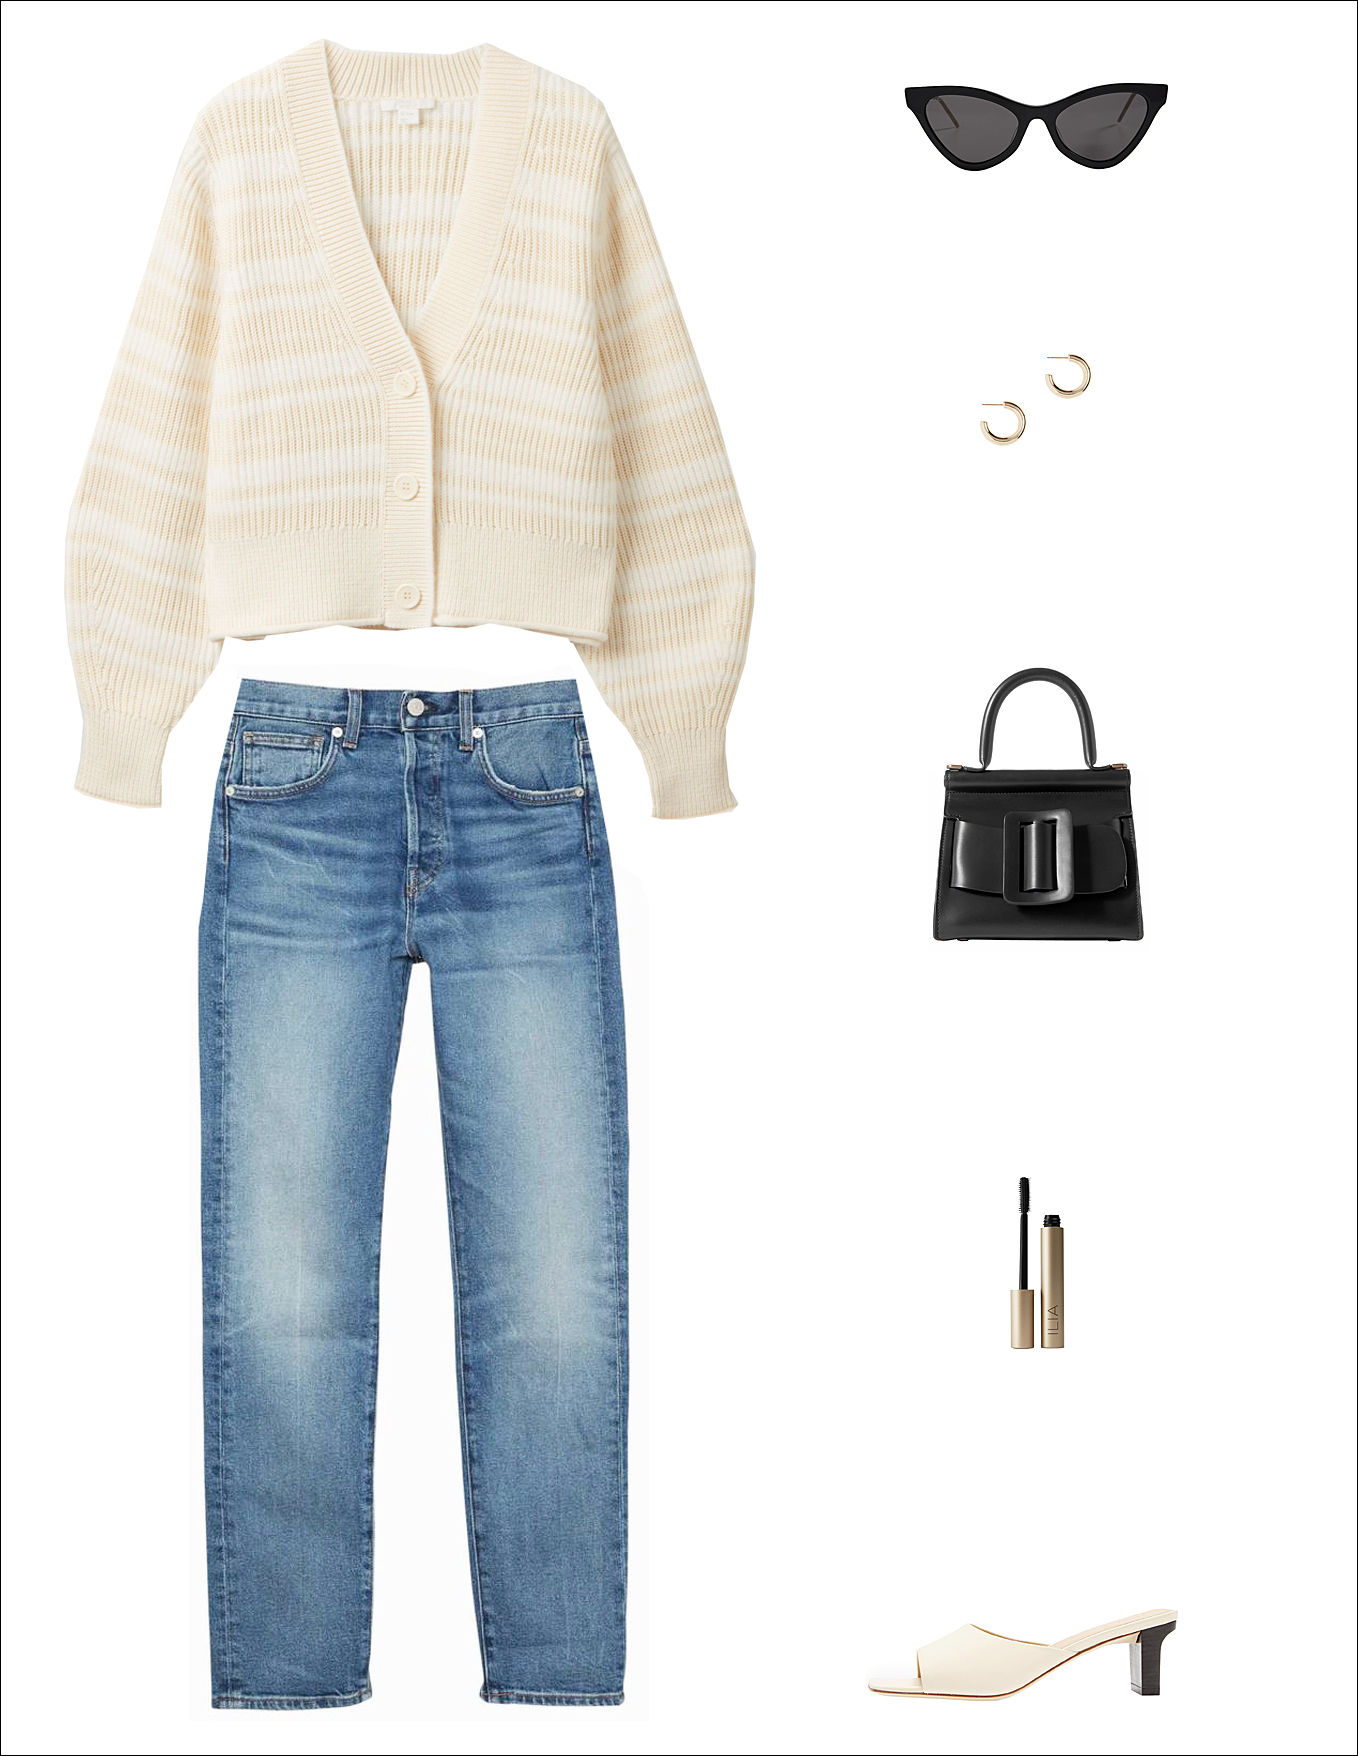 A Chic Way to Wear a Cozy Cardigan for Spring — Outfit idea with a COS striped cardigan, black Gucci cat-eye sunglasses, hoop earrings, a standout mini bag, '90s-inspired CQY slim jeans, and minimalist Aeyde slip-on sandals